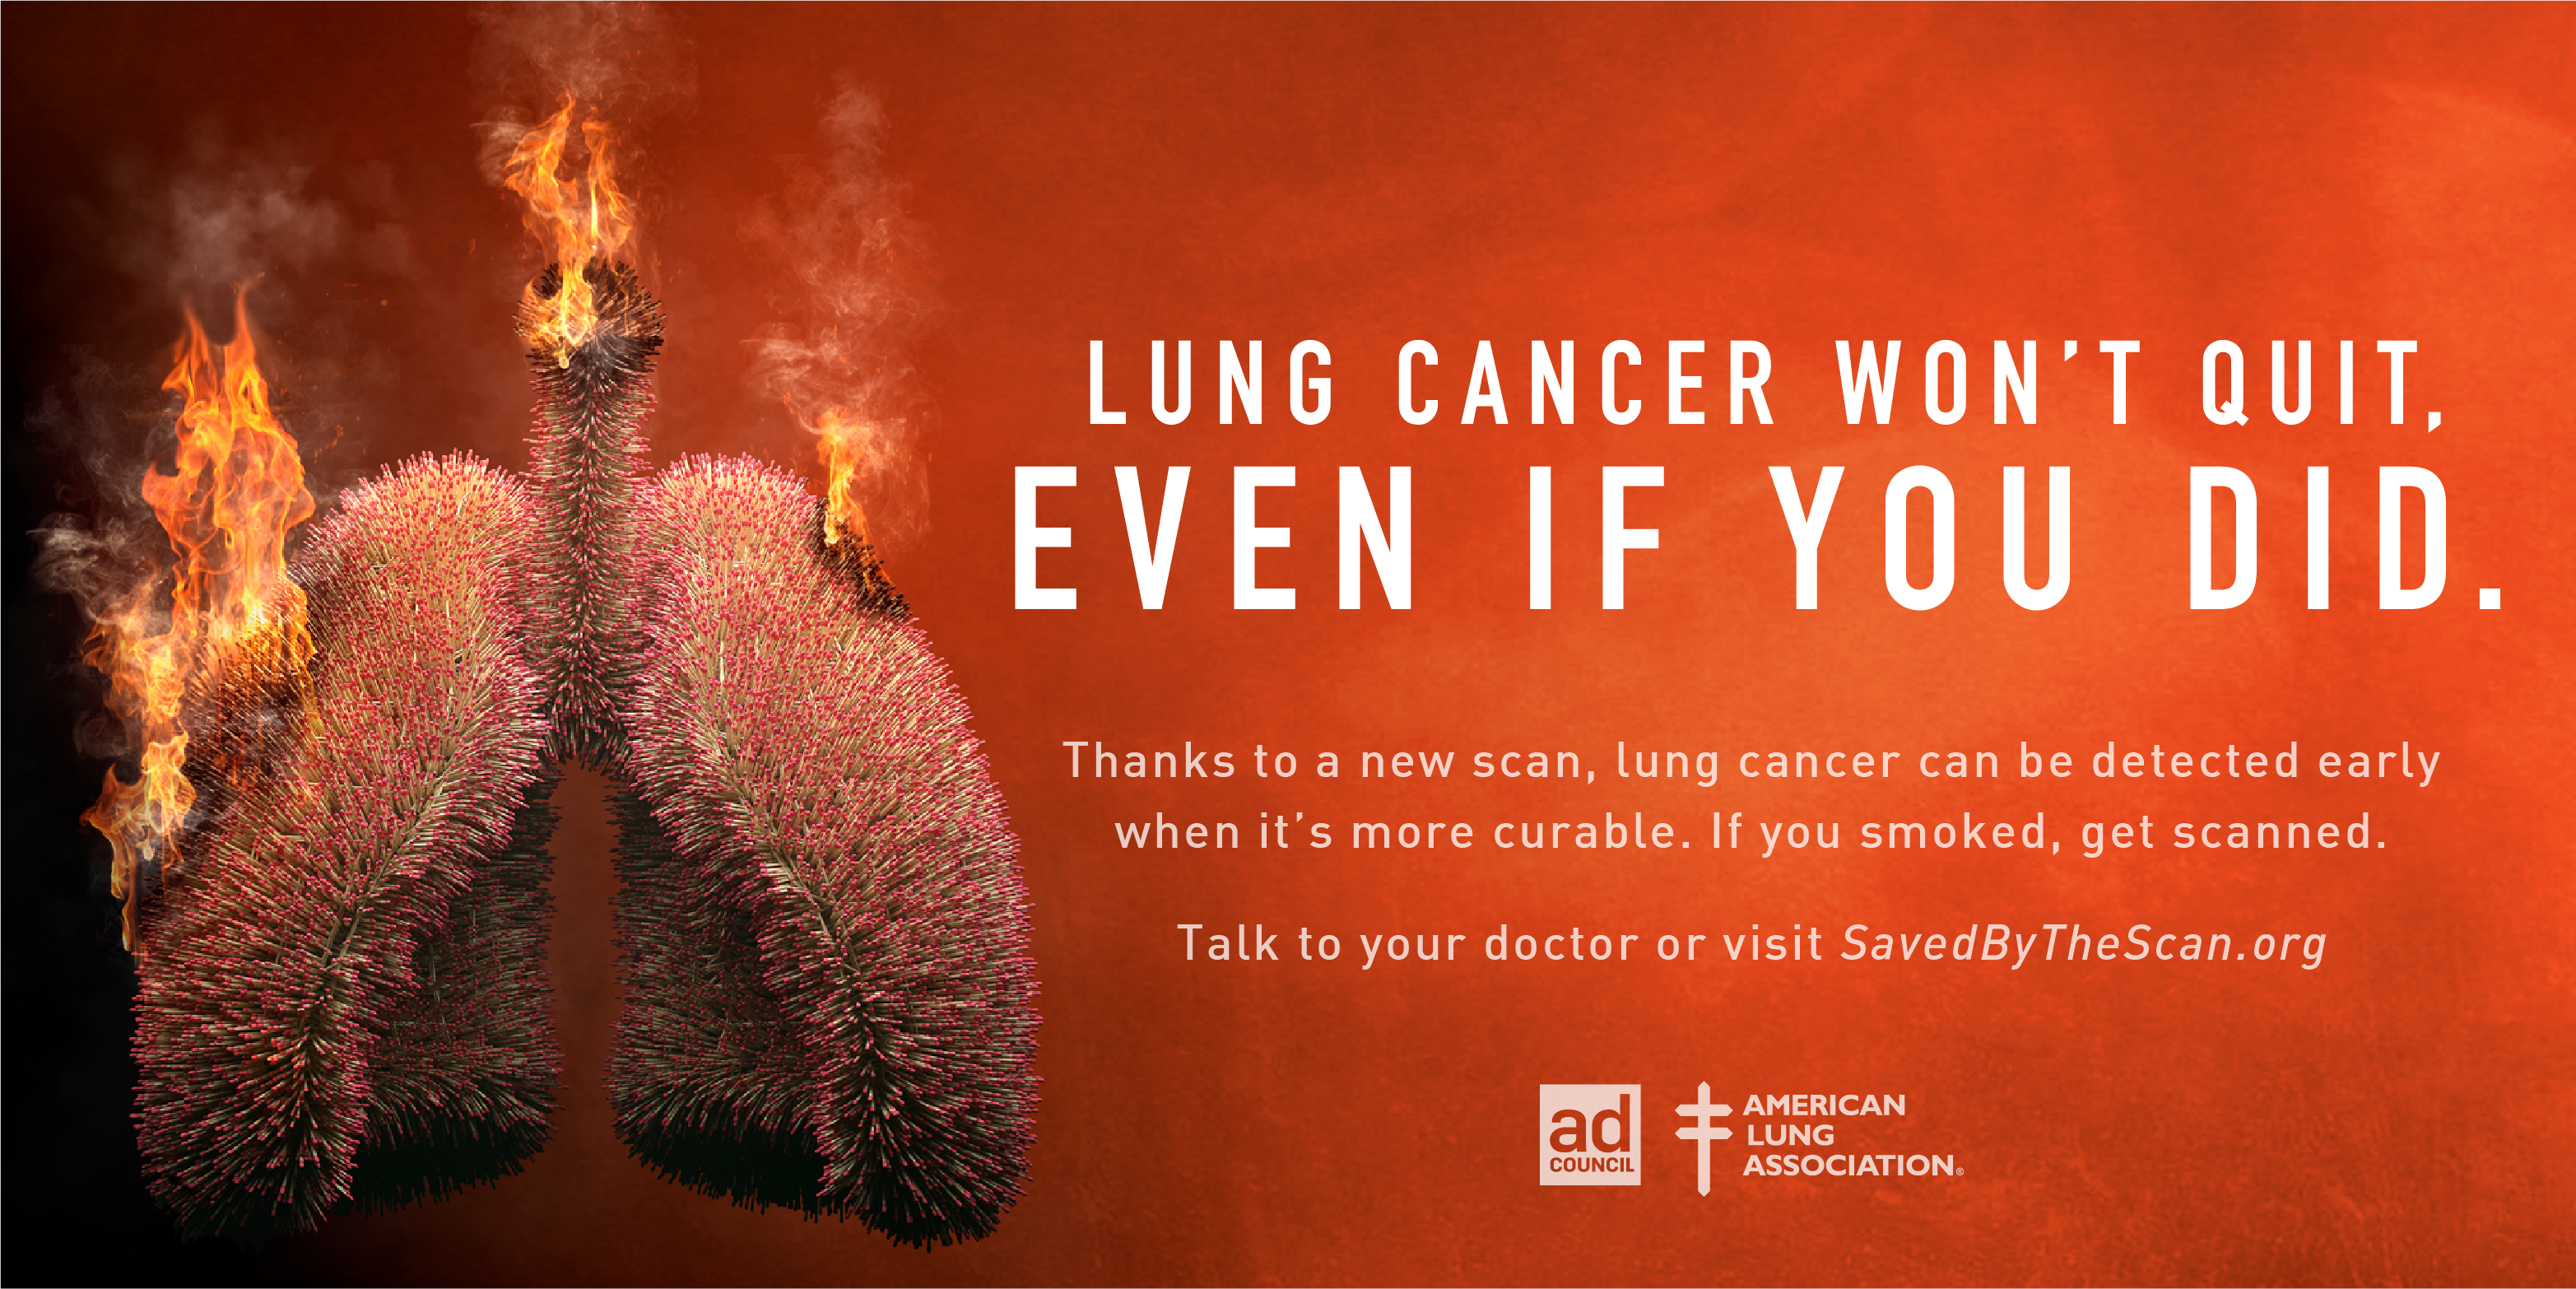 TW_Lung